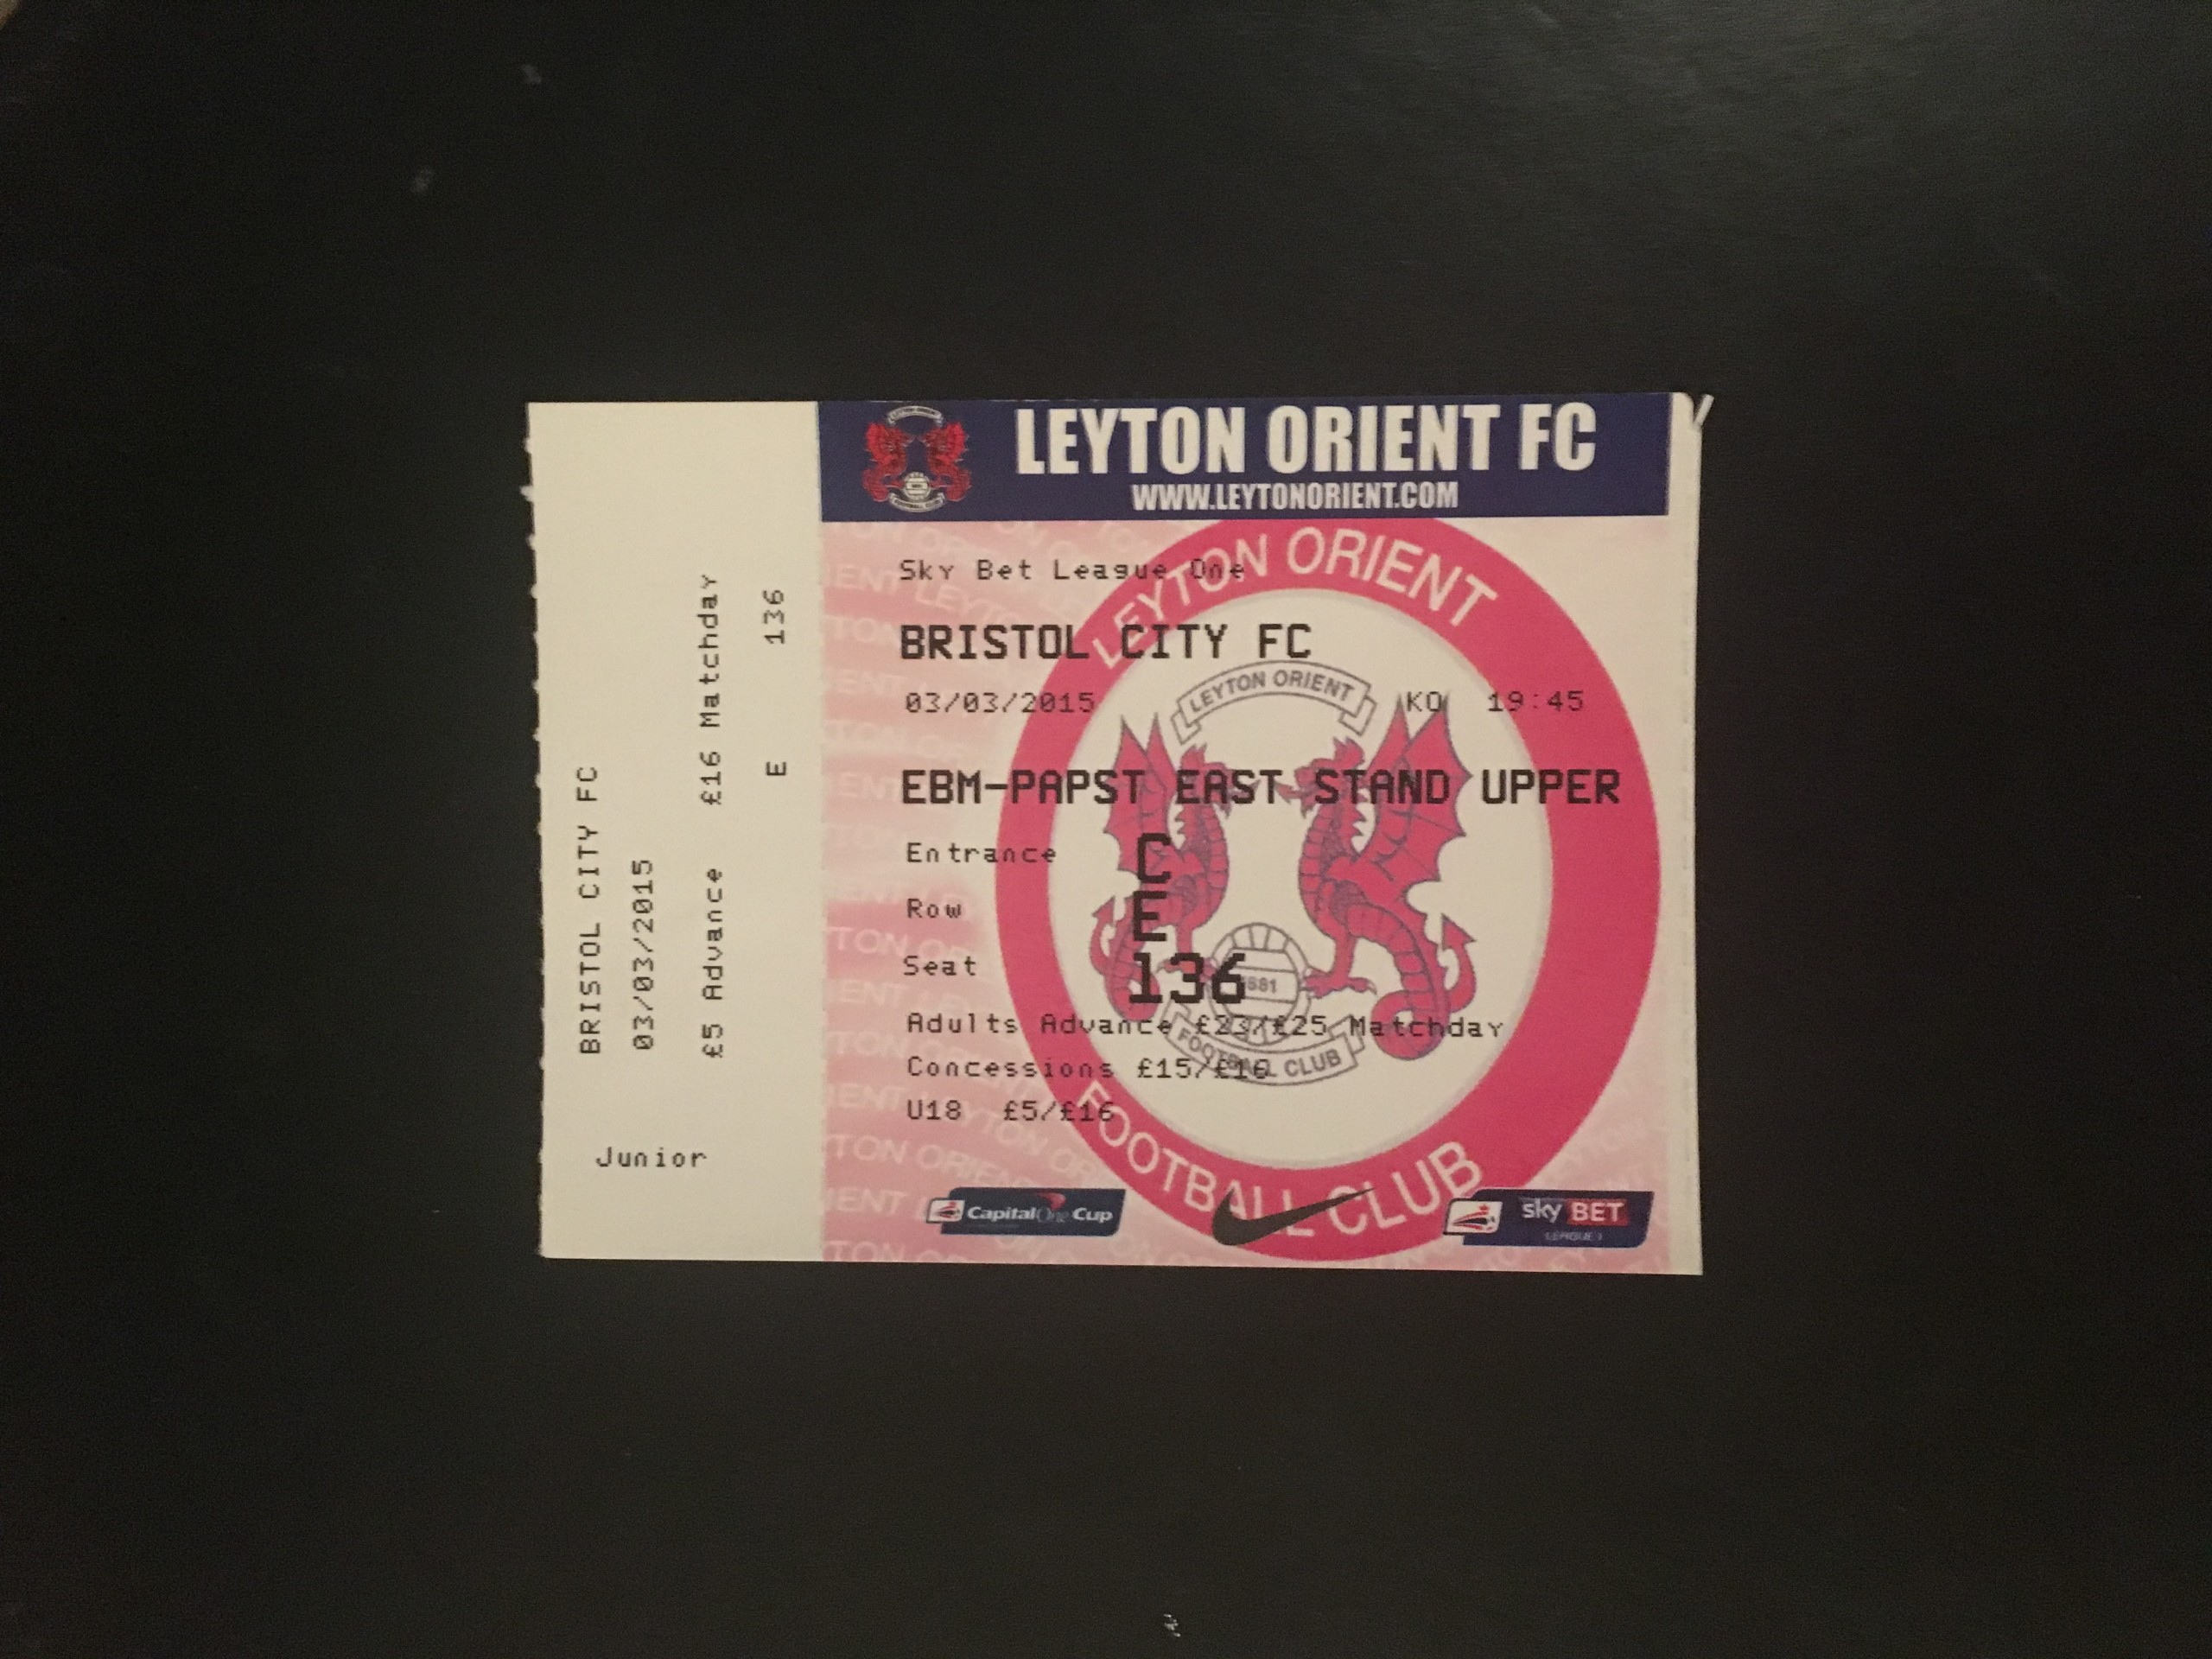 Leyton Orient v Bristol City 03-03-2015 Ticket